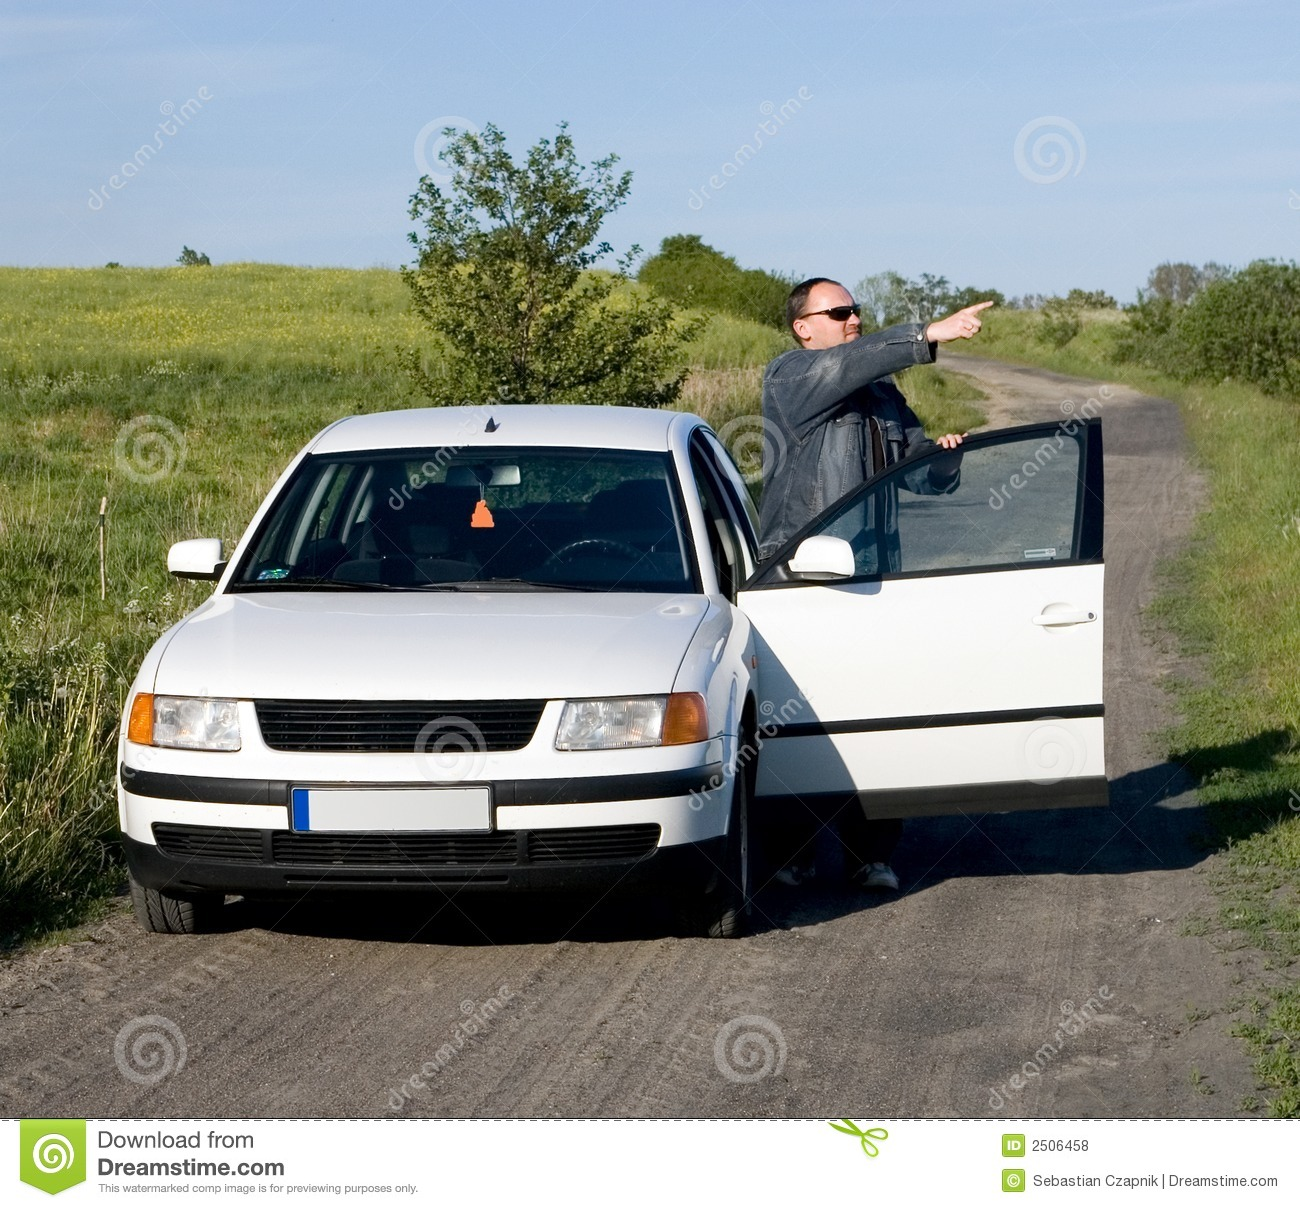 Car And Man On Country Road Royalty Free Stock Photos